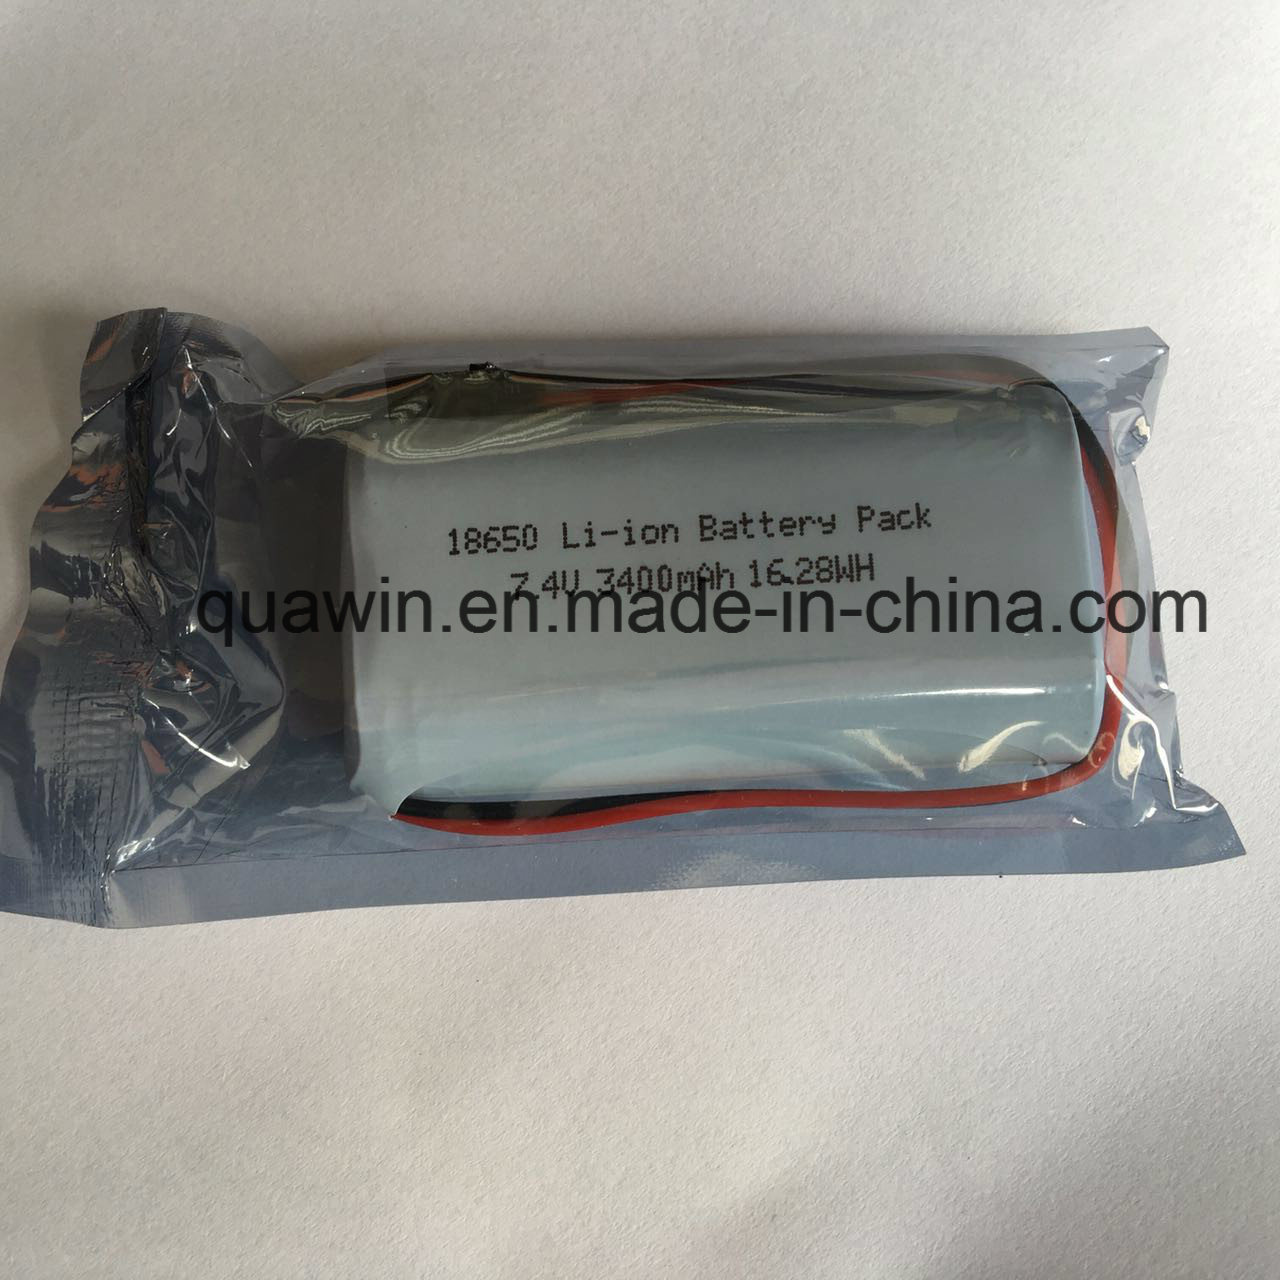 2s1p 7.4V 3400mAh Panasonic Cell 18650 Lithium-Ion Battery Pack